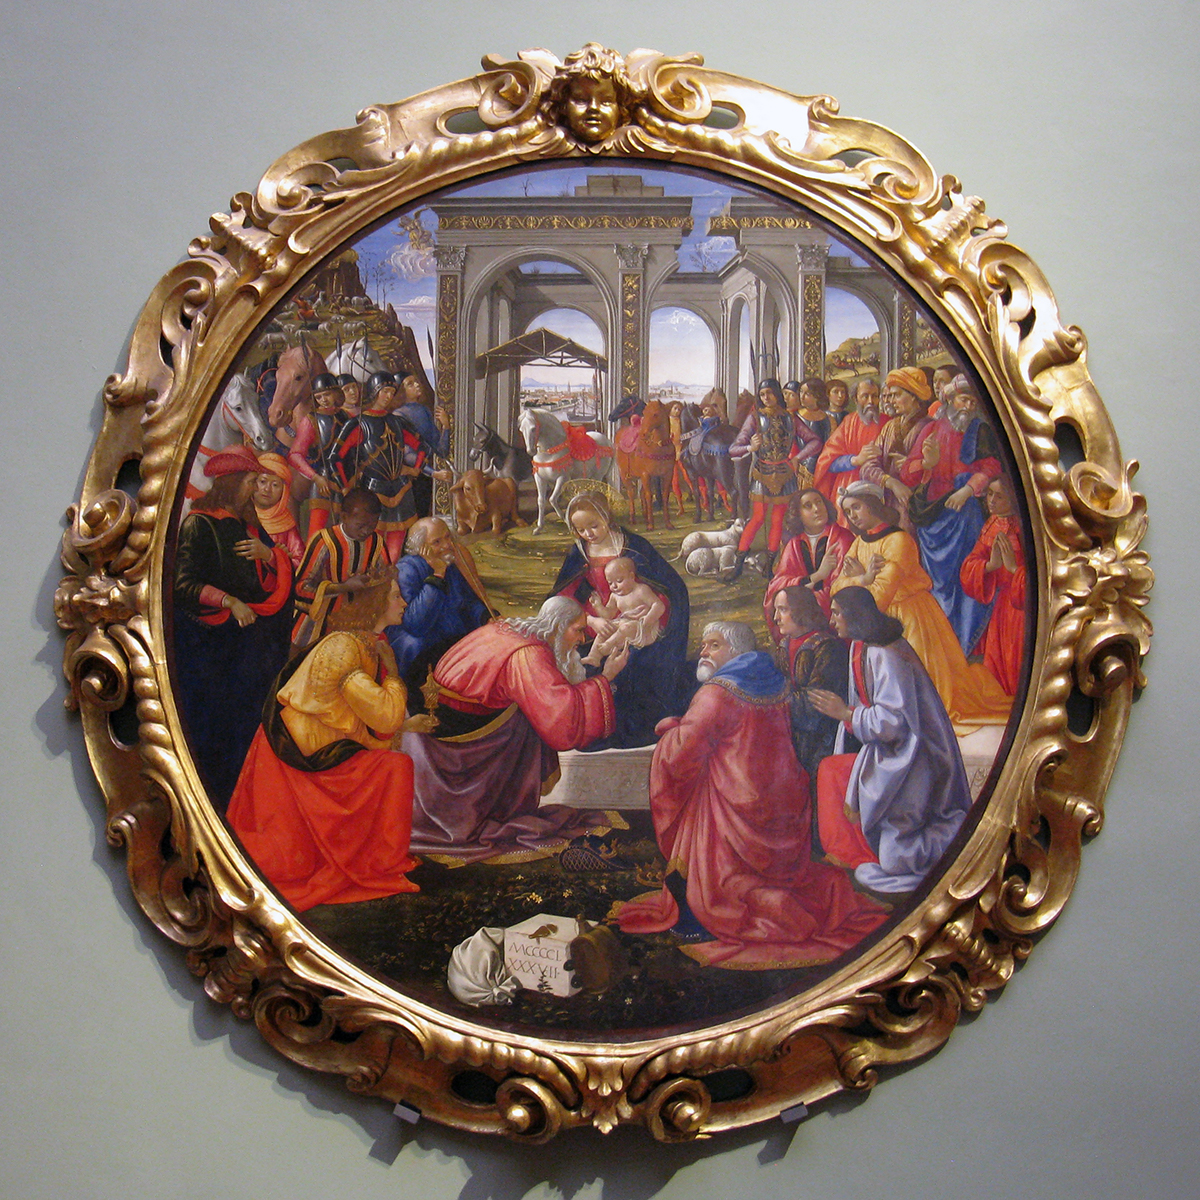 Ghirlandaio: Adoration of the Magi in the Uffizi Gallery